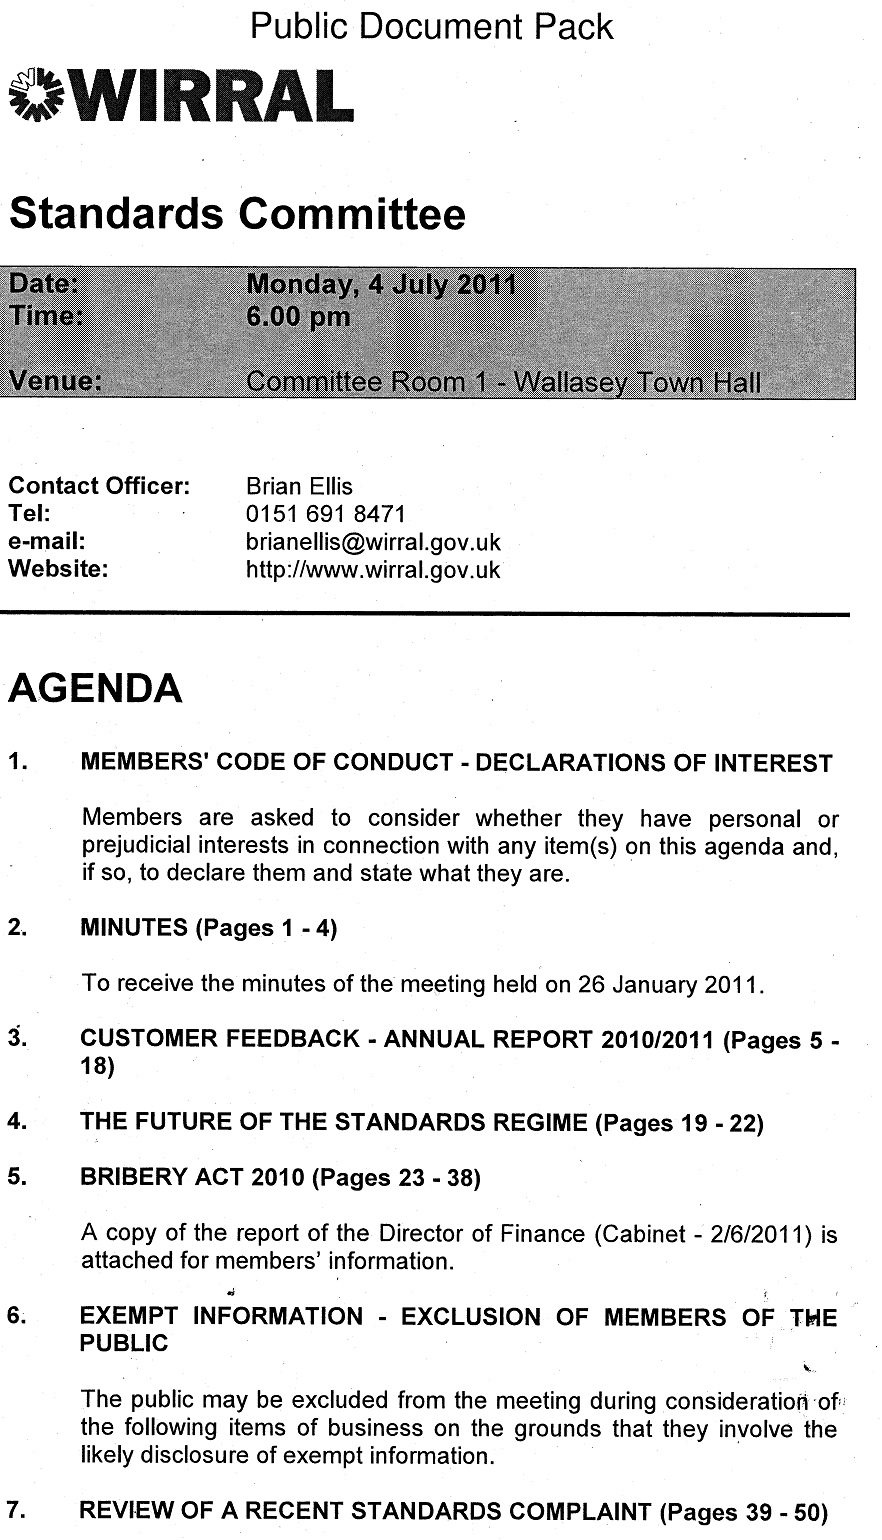 Standards Commitee Agenda 6th July 2011